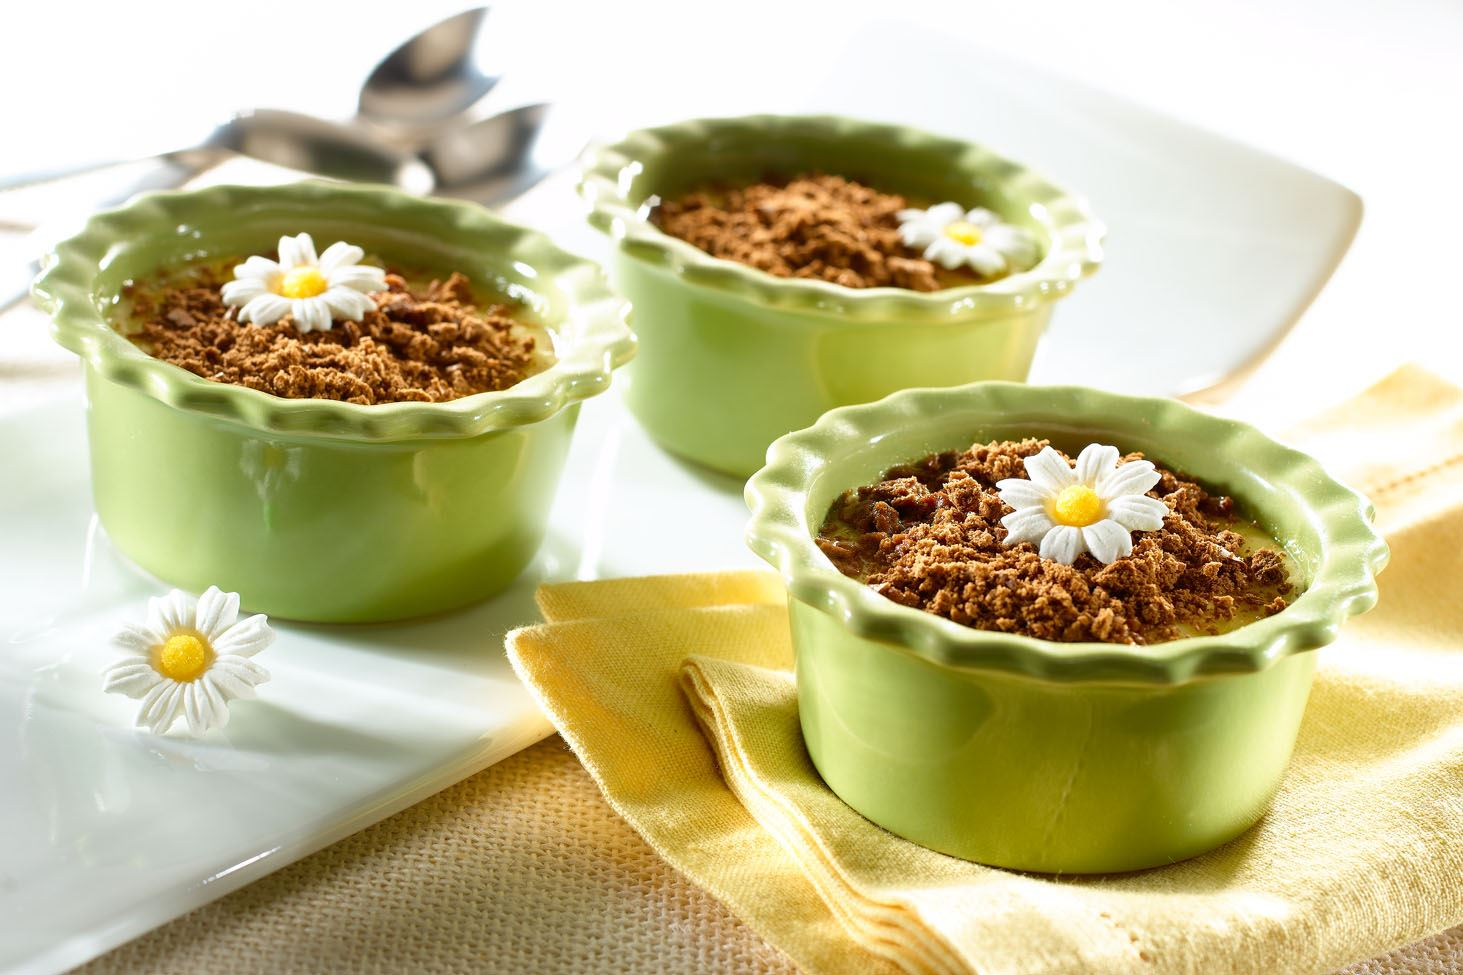 Creamy Coconut Custard with Chocolate Crumbles